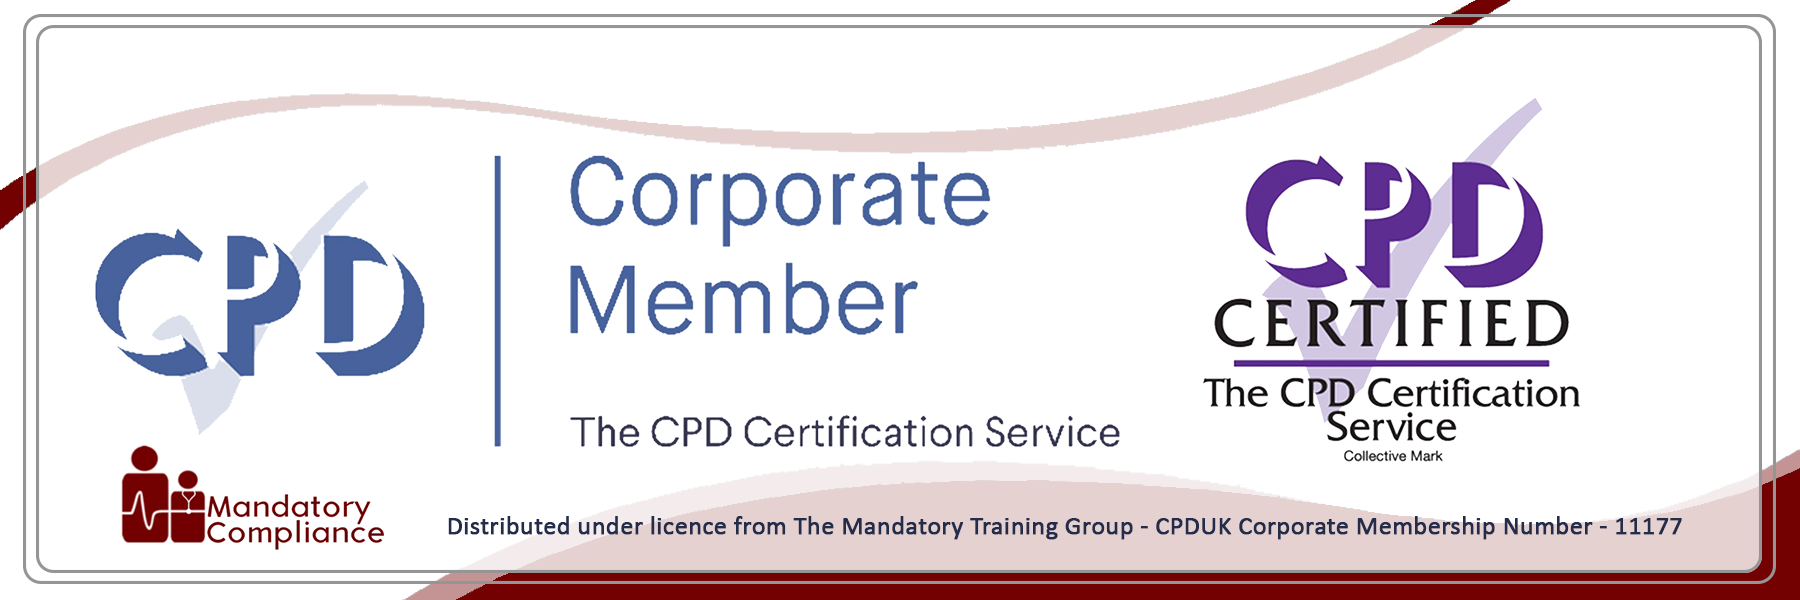 Person-Centred Care Training - Online Training Course - CPD Accredited - Mandatory Compliance UK -